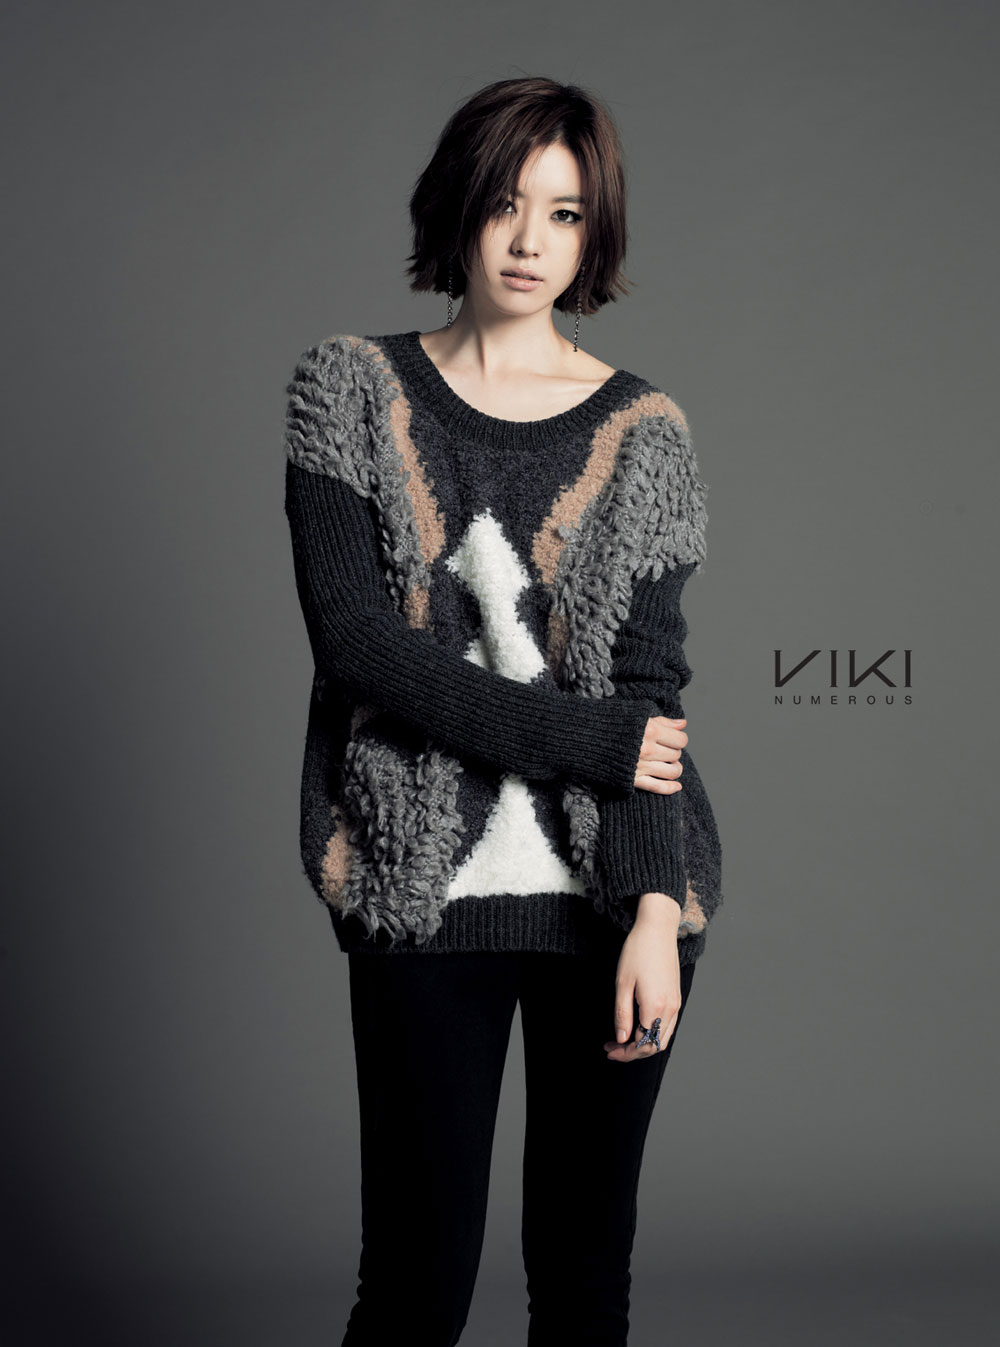 Han Hyo Joo VIKI Numerous fashion brand